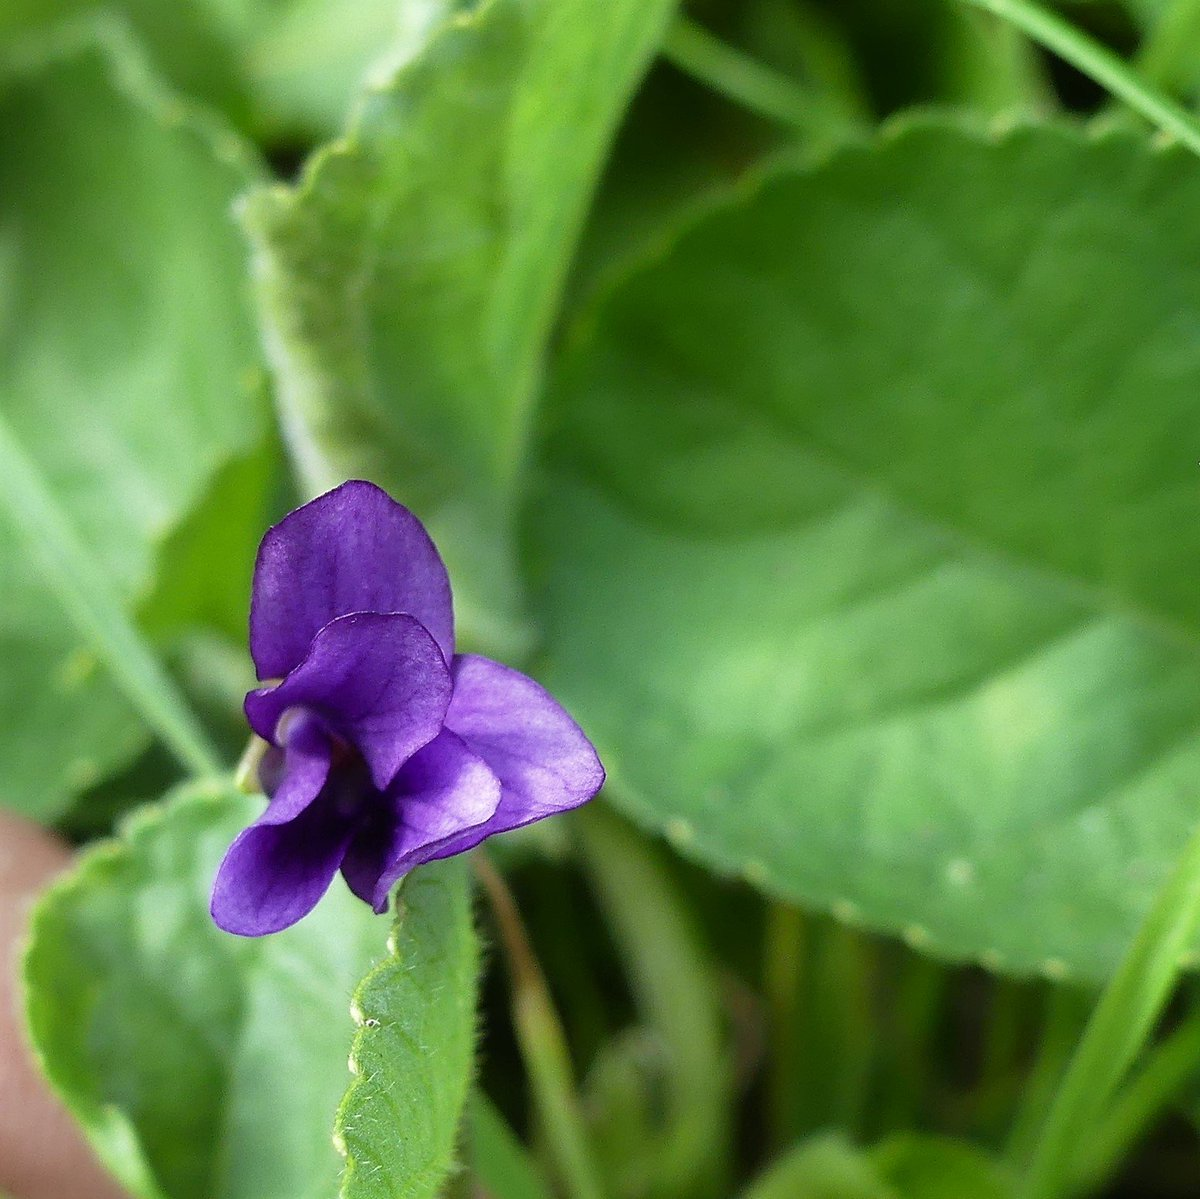 I usually spot the first Sweet Violets, Viola odorata var.praecox, at East Chiltington churchyard during the #newyearplanthunt but these were out this week. #wildflowerhour <br>http://pic.twitter.com/w8tQQj6tn3